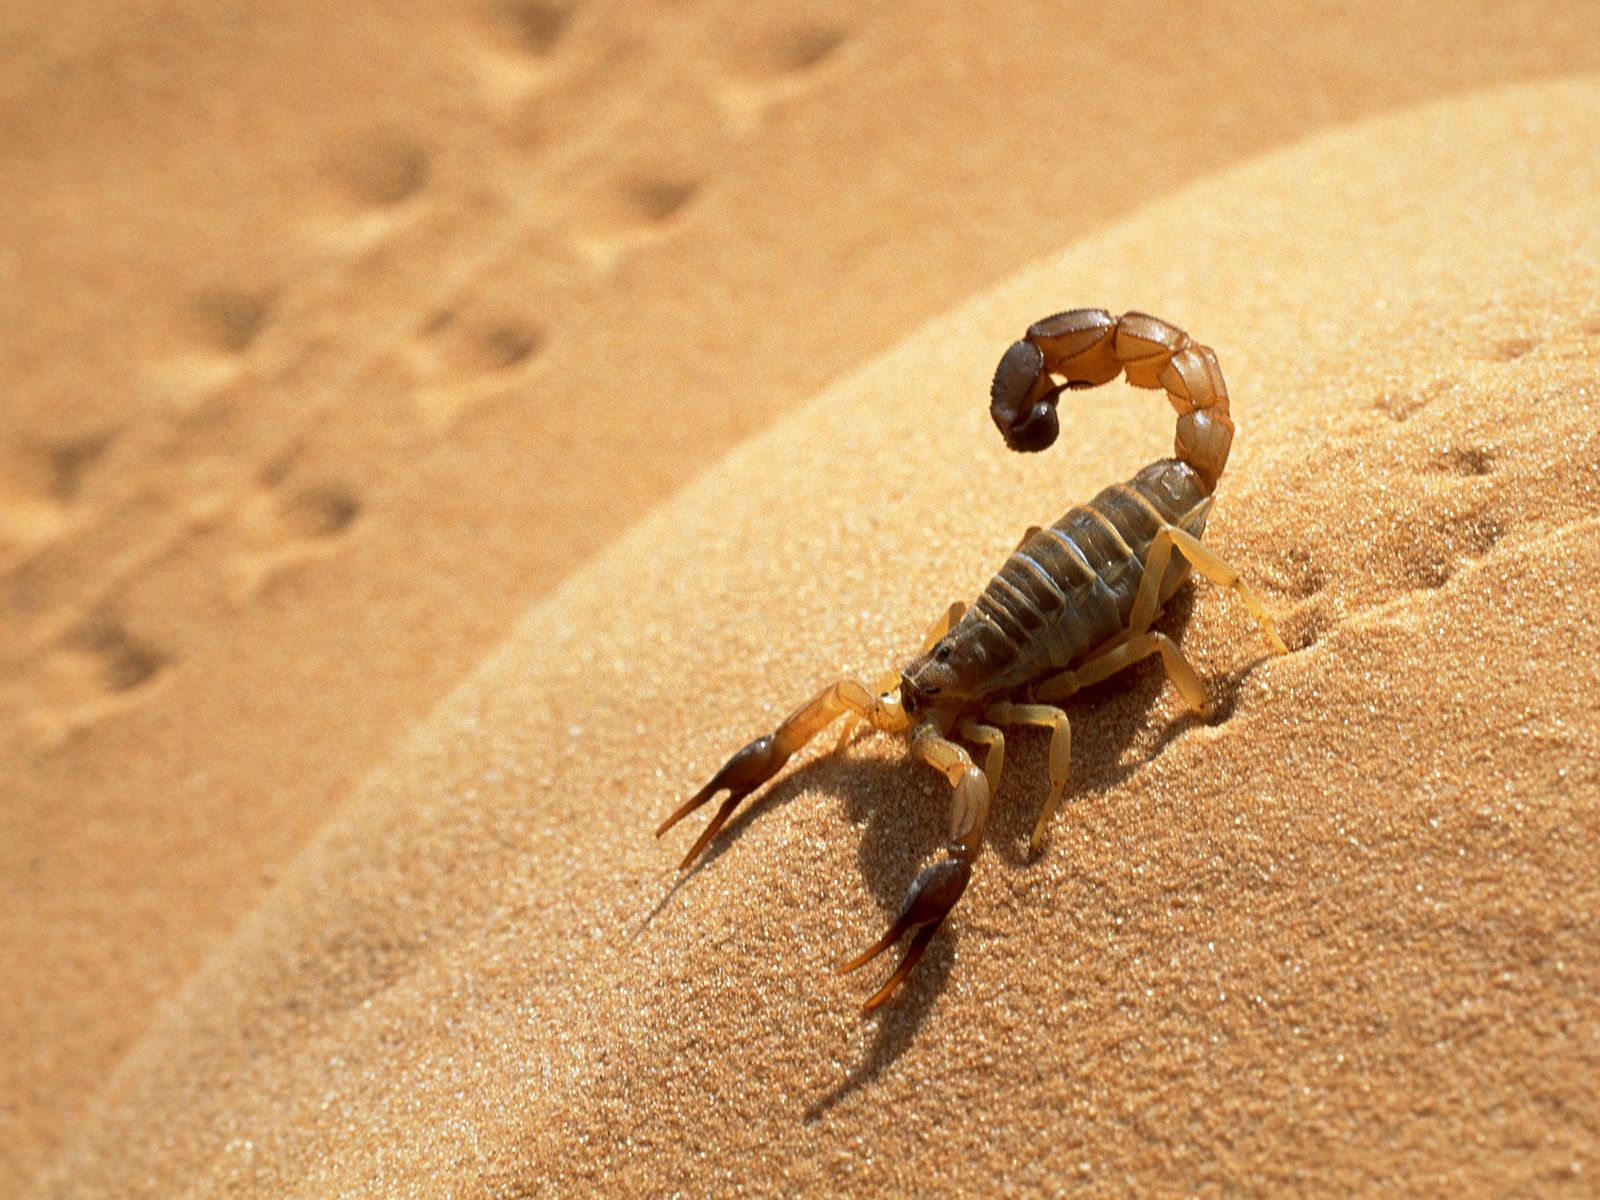 desert scorpion - photo #2